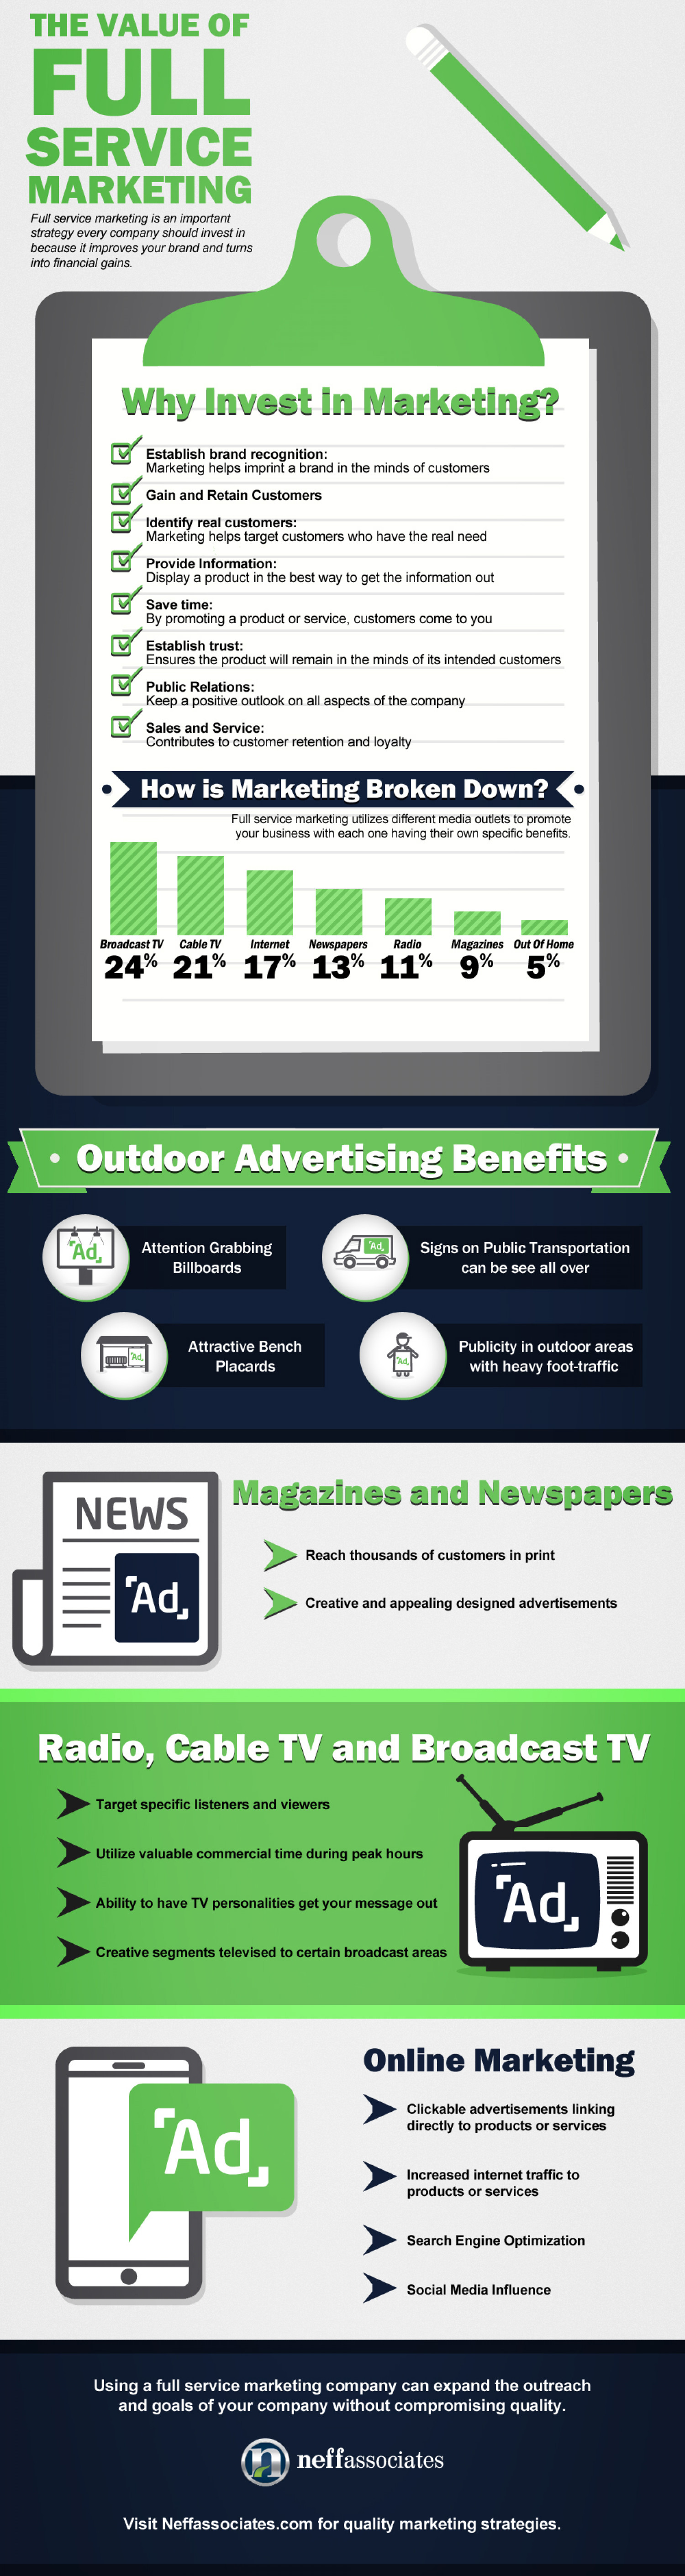 The Value of Full Service Marketing Infographic